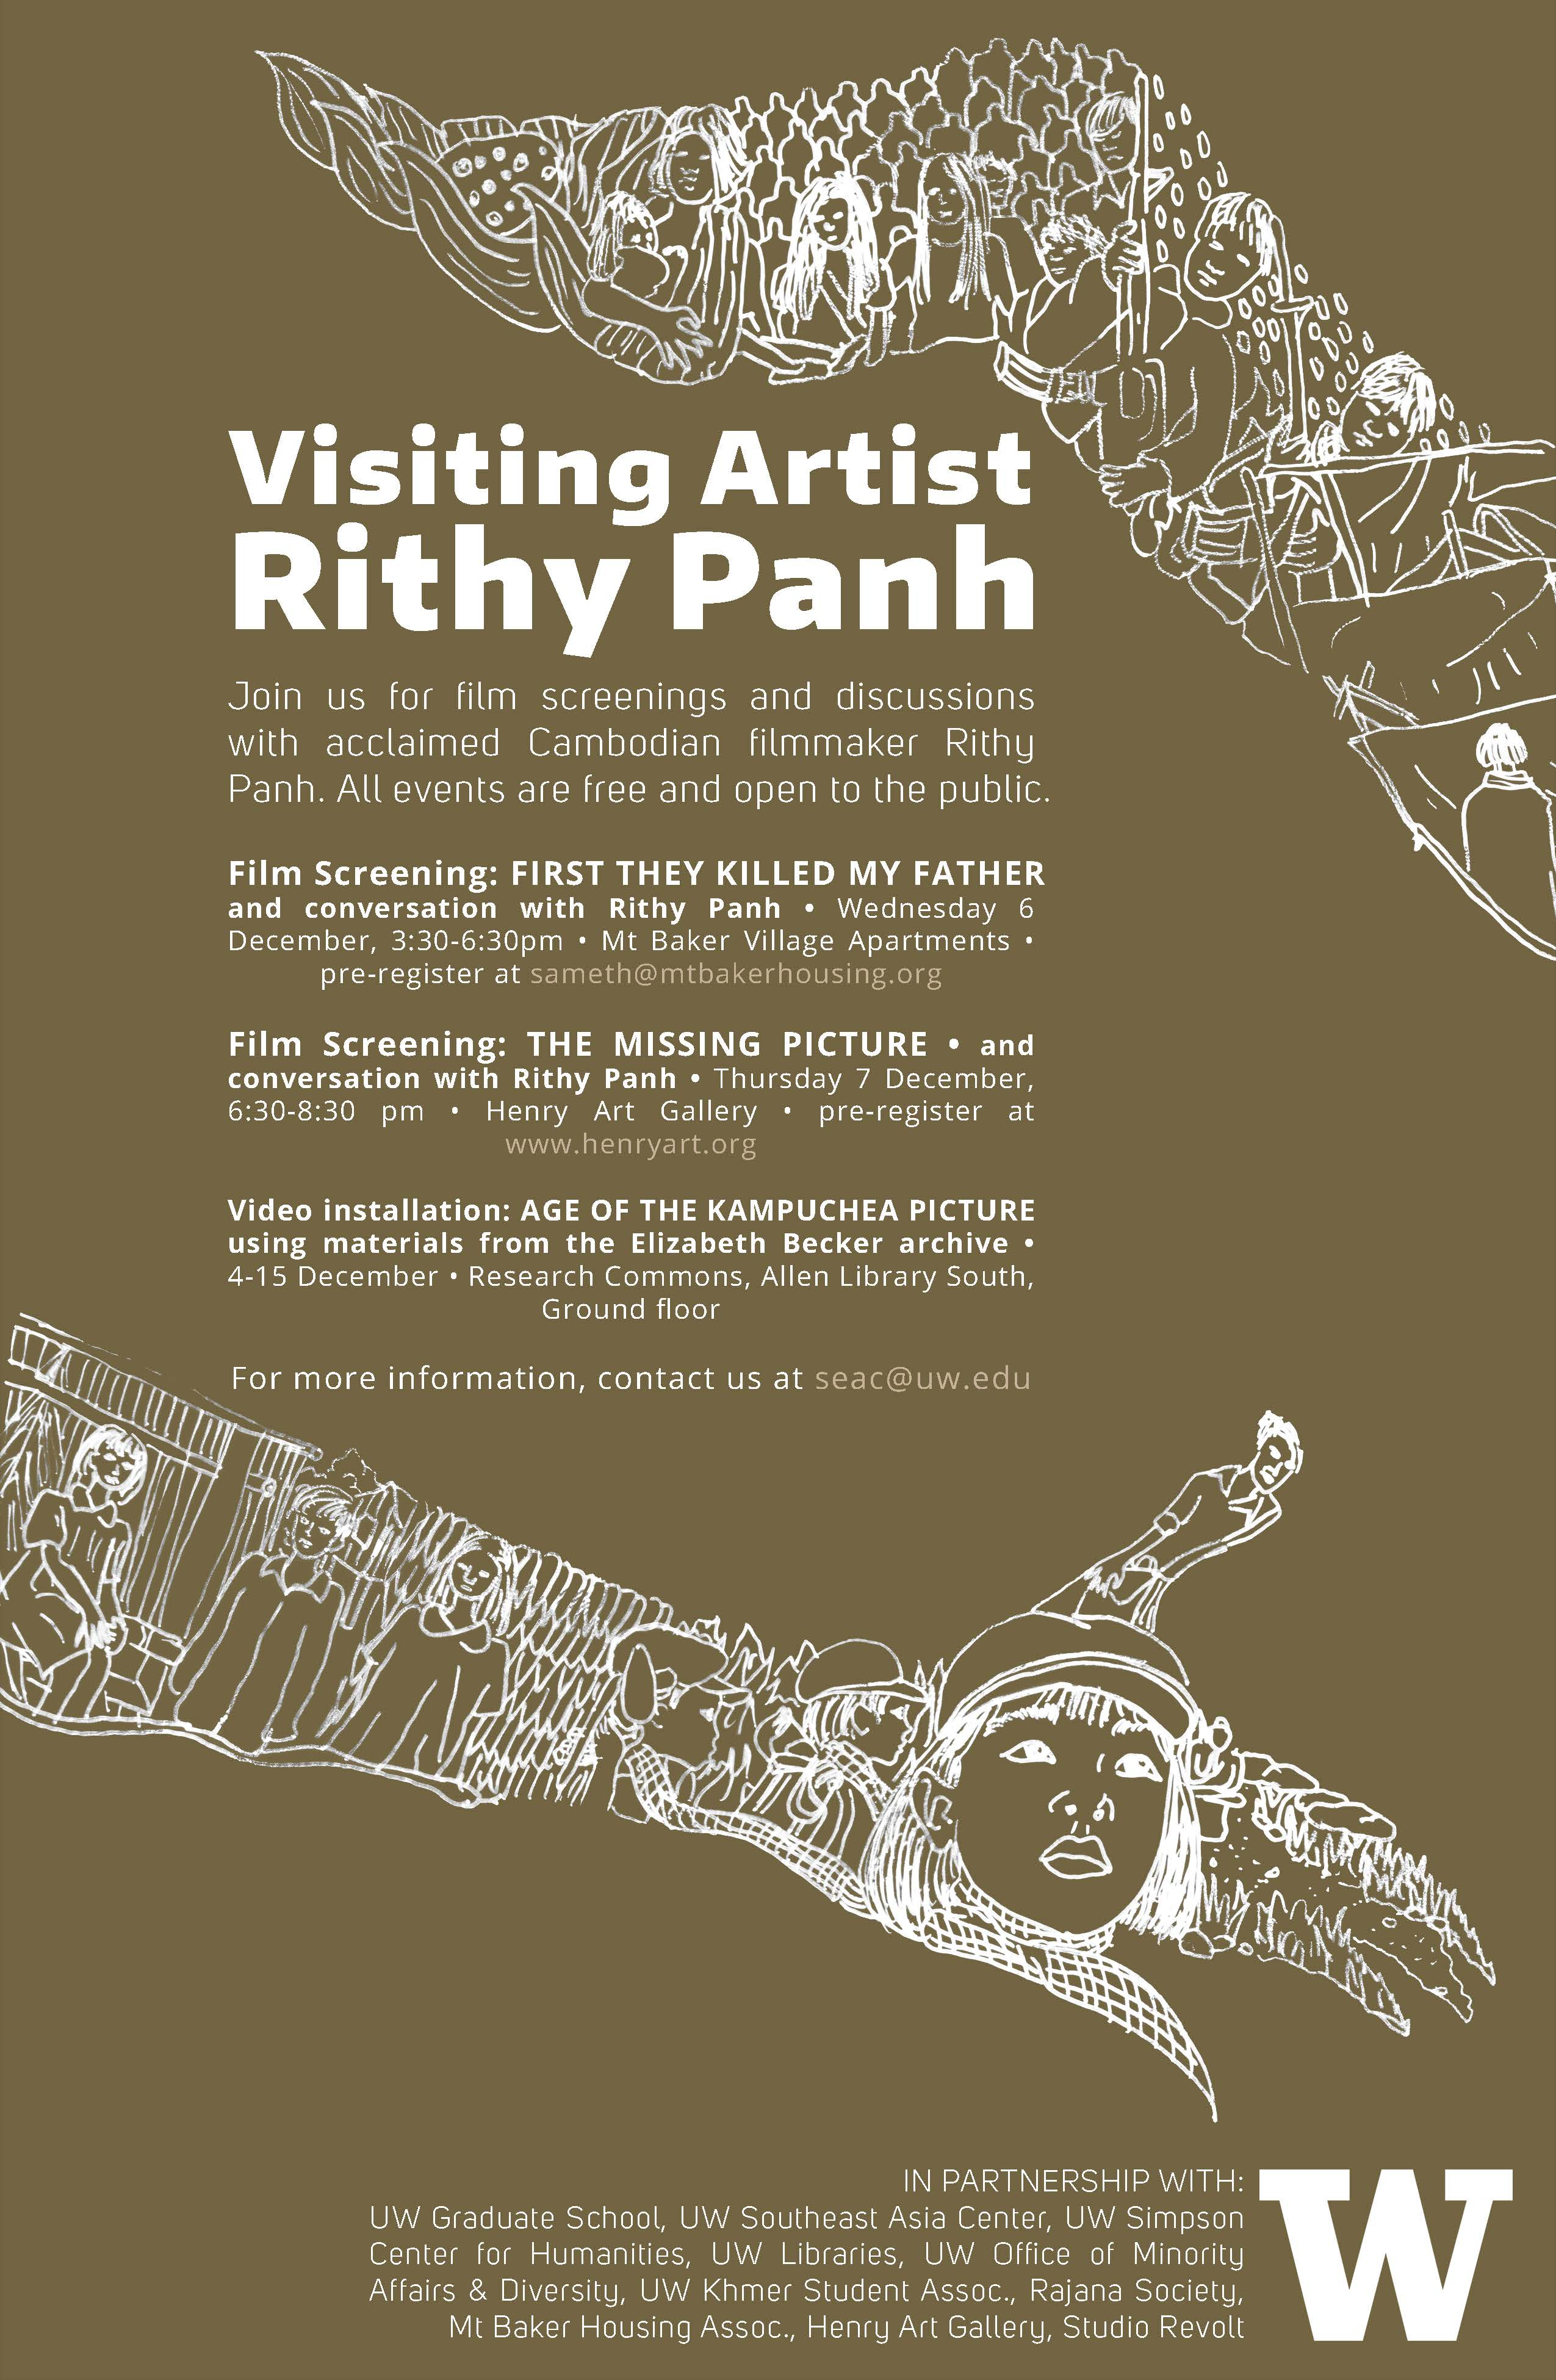 Poster for Visiting Artist Rithy Pan, advertising events in December 2018